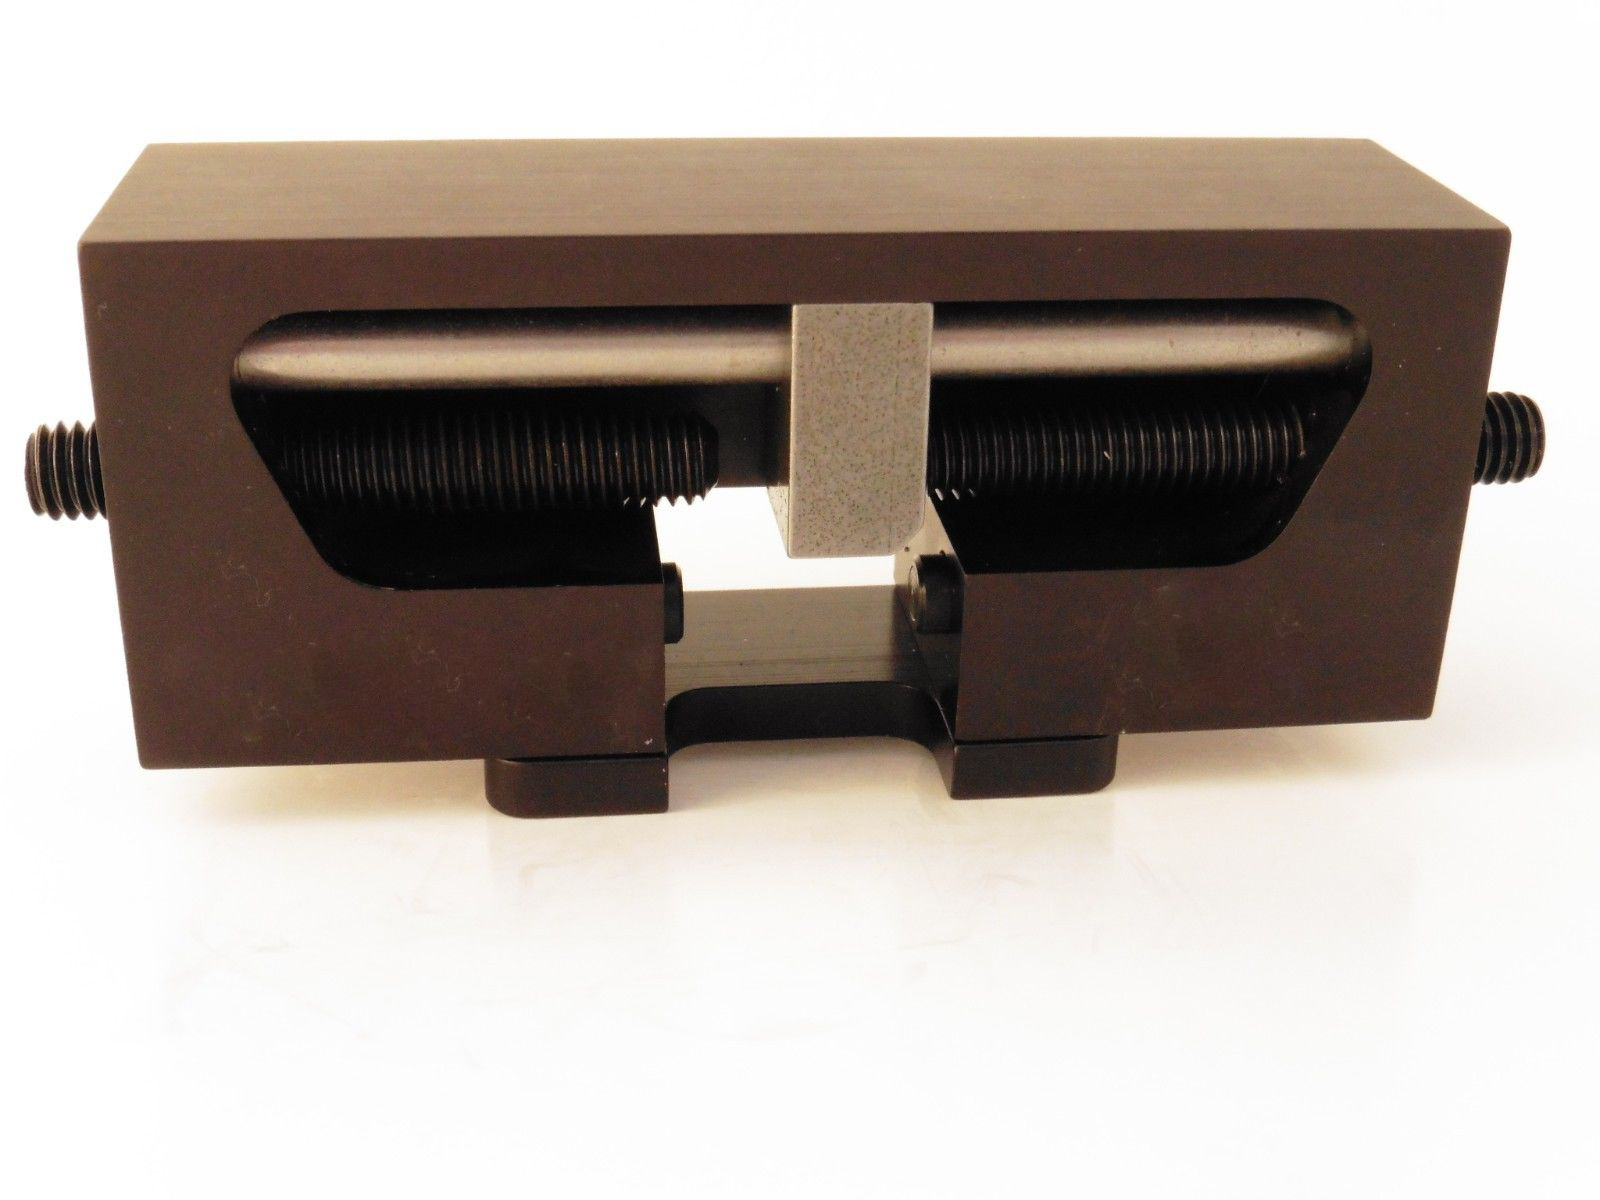 Magorui Handgun Sight Pusher Tool Universal For 1911 Glock Sig Springfield And Others